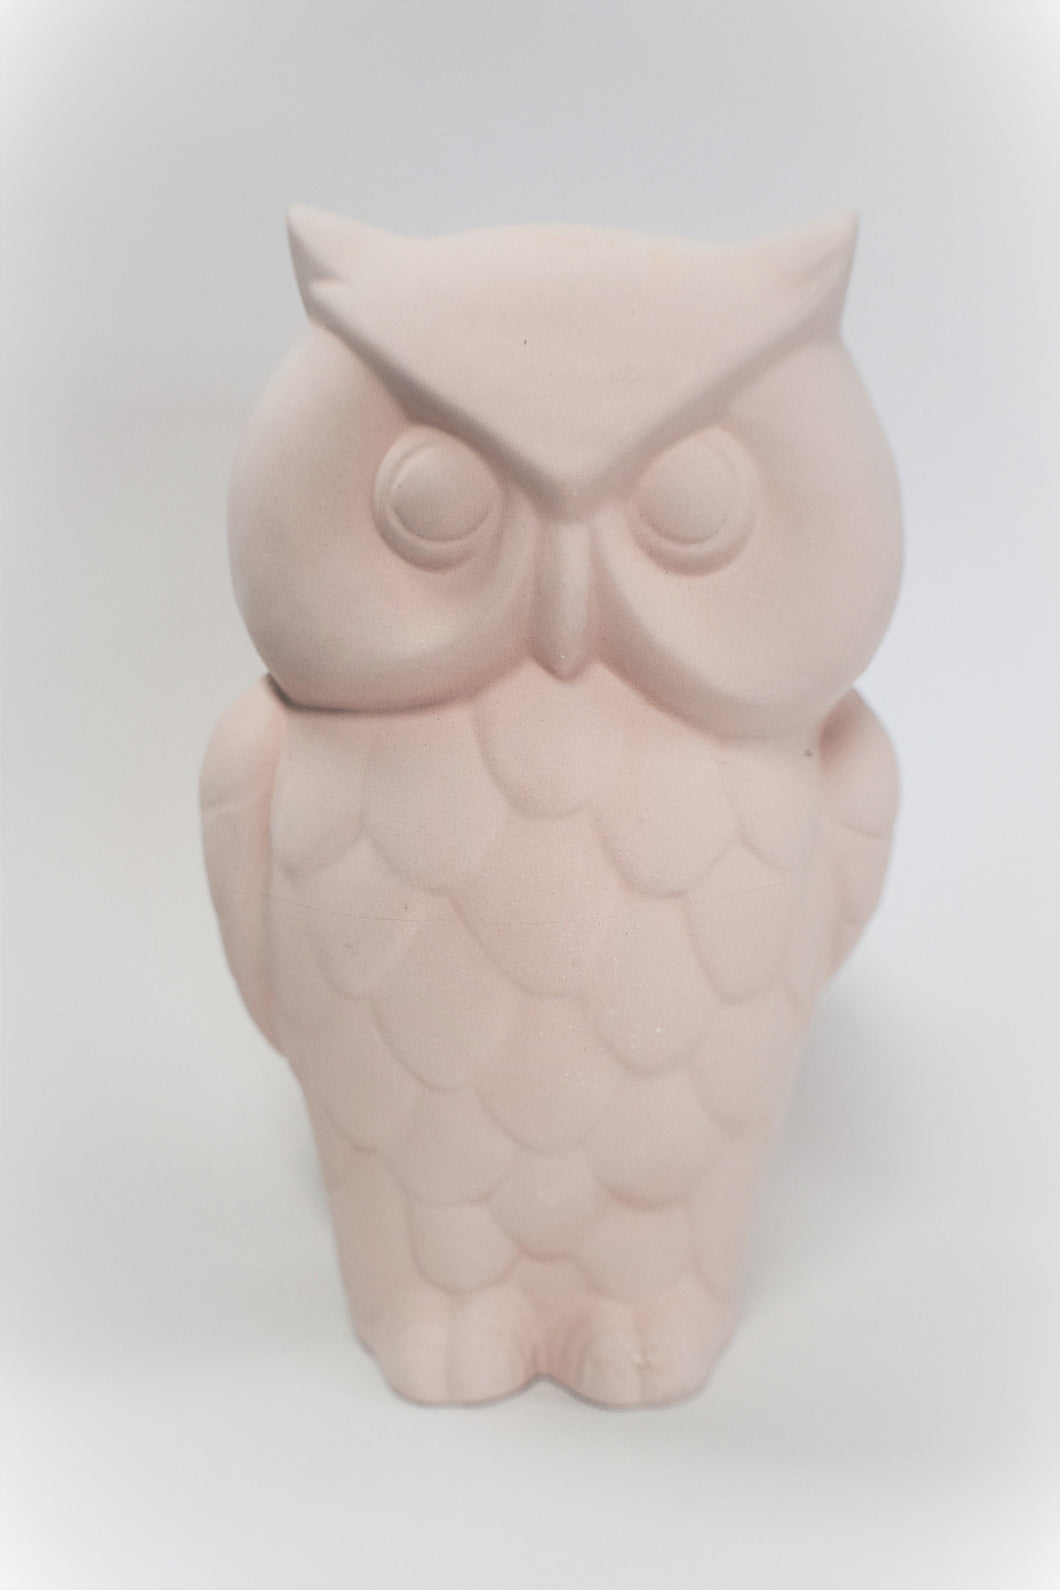 Owl.Ceramic Bisque Owl.Ready To Paint Owl.Tall Owl.Ceramic Bisque Owl.Paint you Own Ceramic.Olga's Treasures Shop